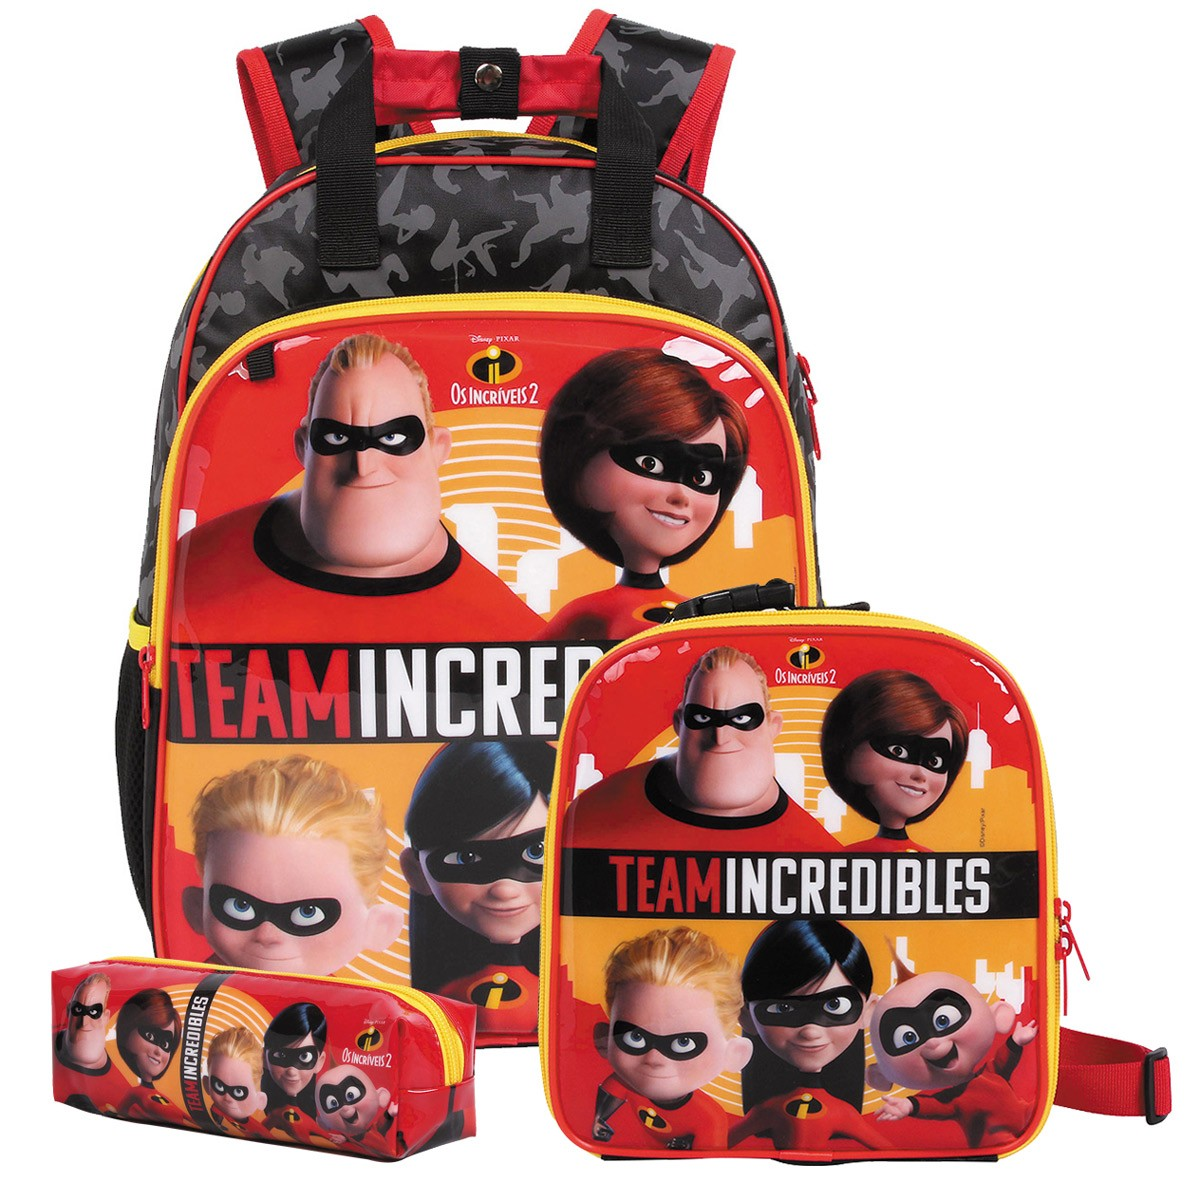 Mochila Os Incríveis 2 Oficial Team Incredibles + Lancheira + Estojo Disney